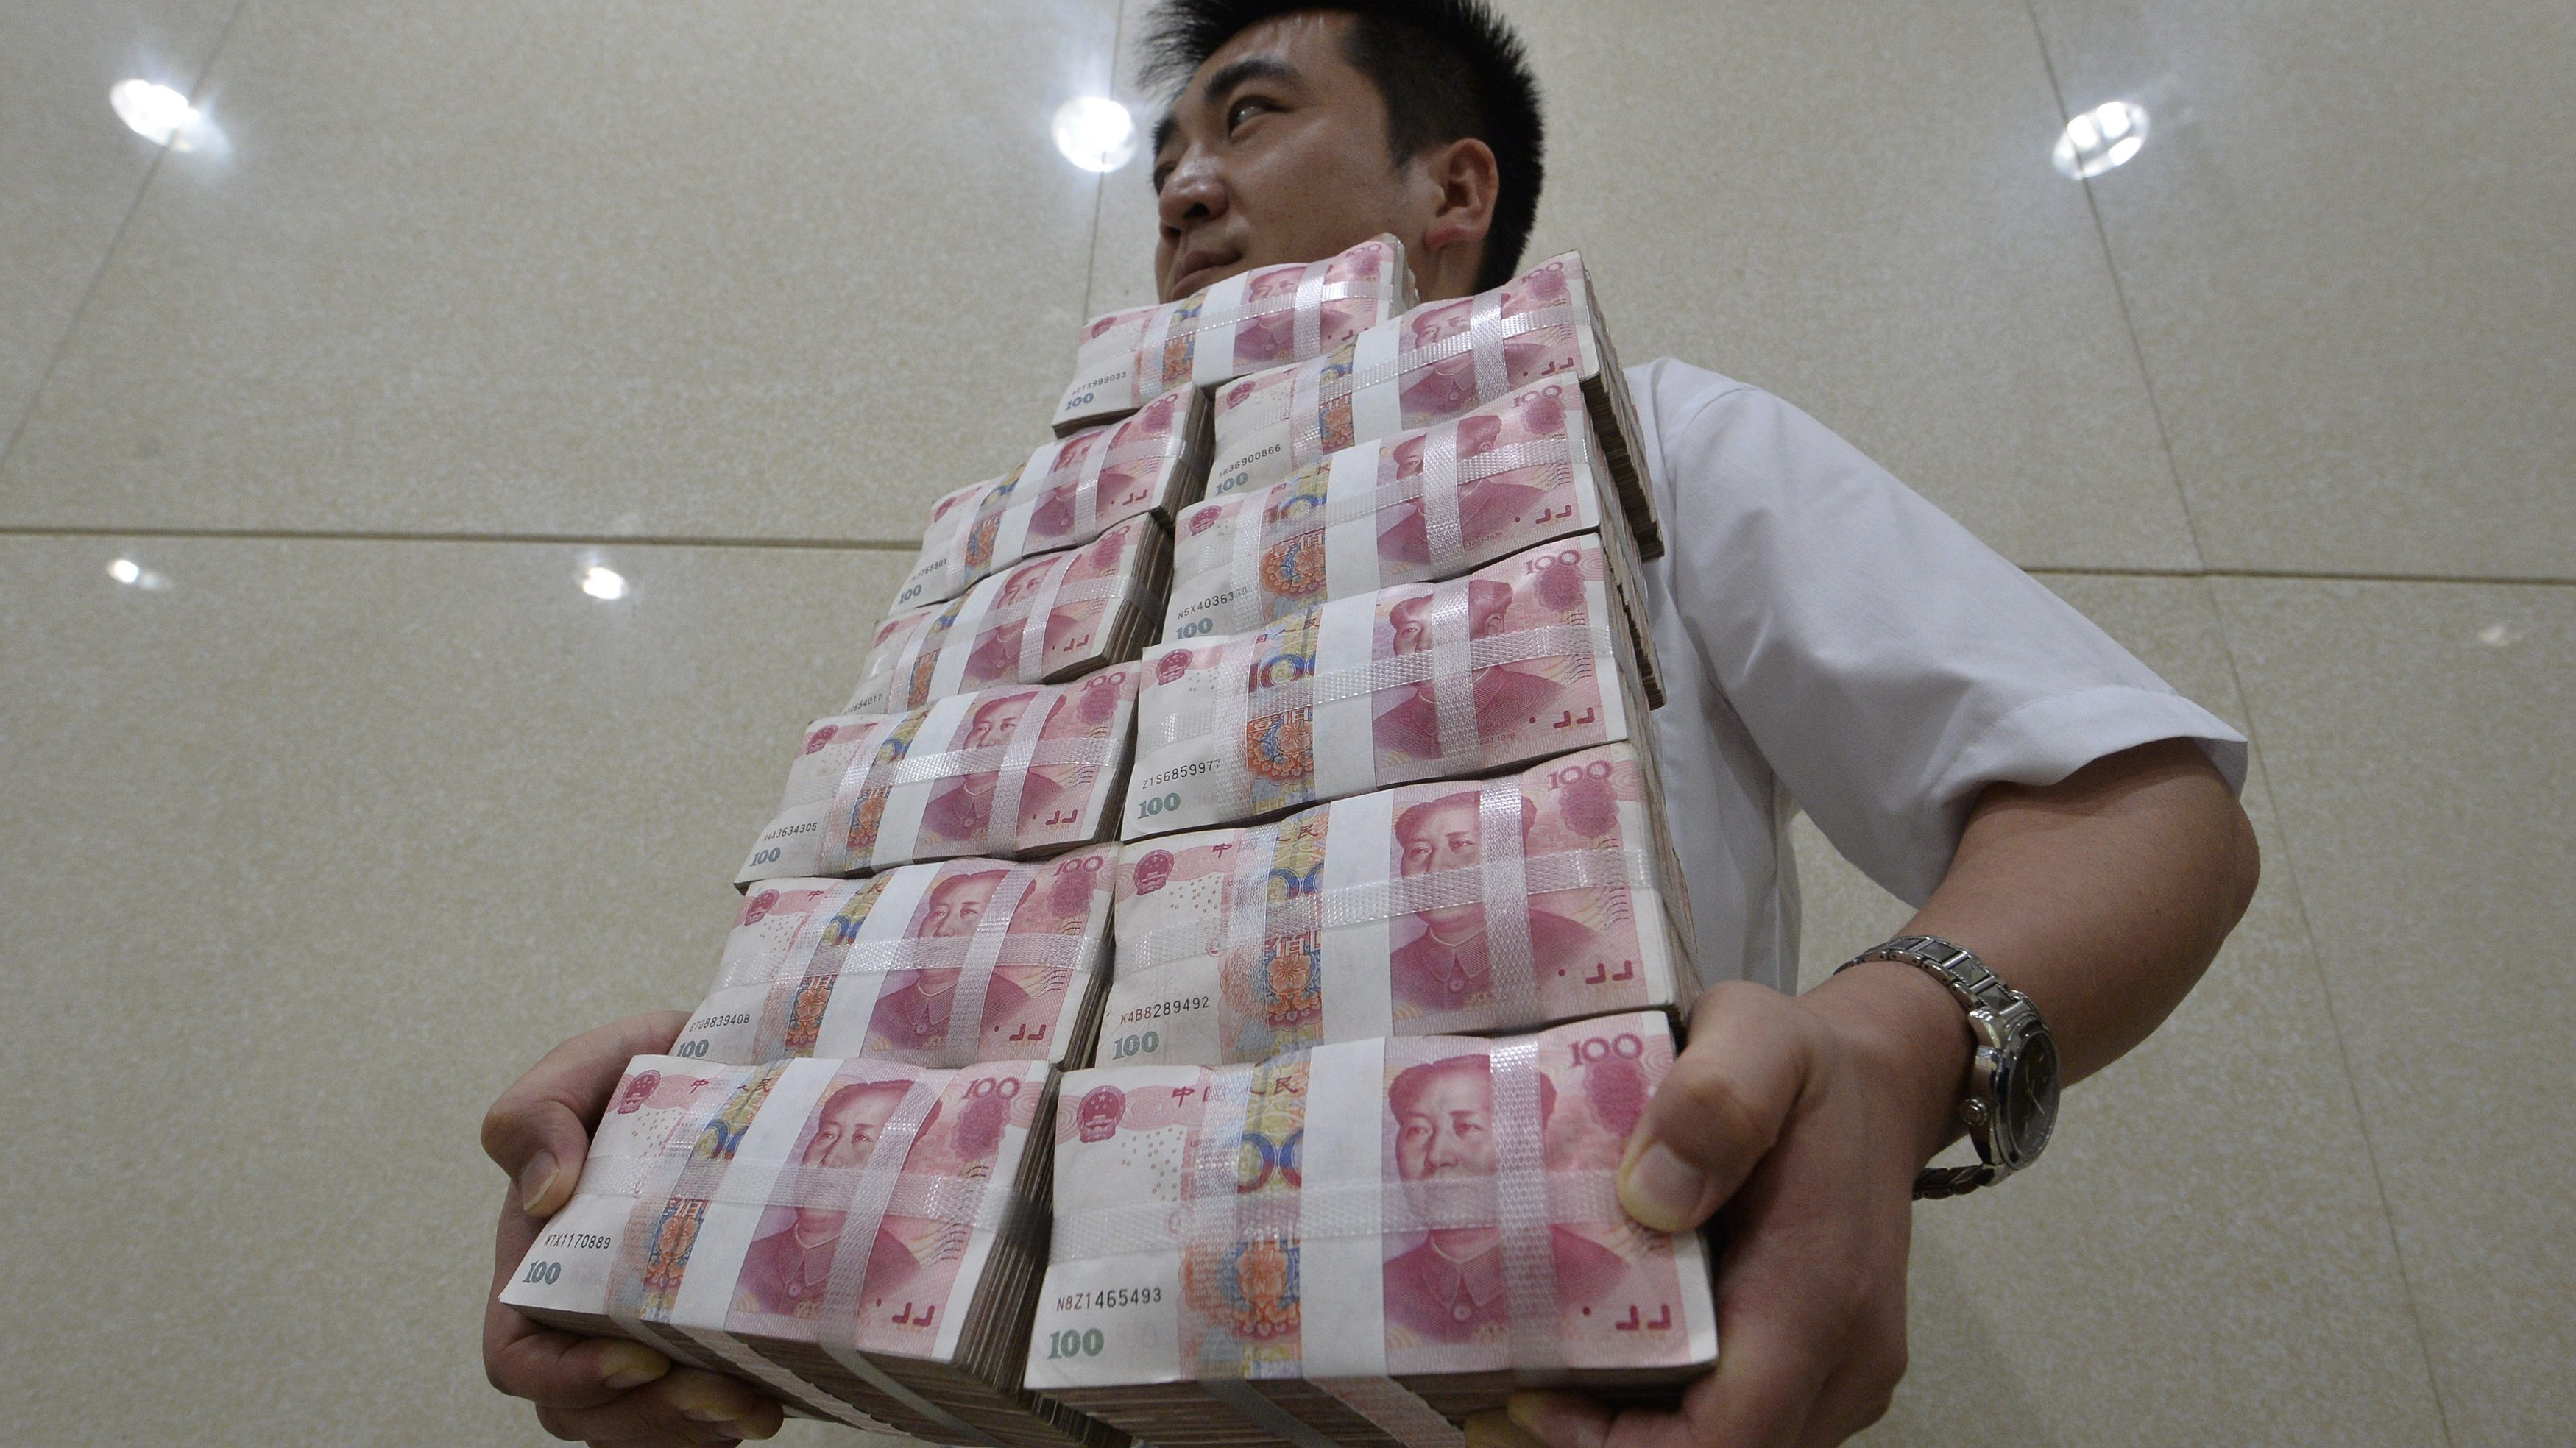 An employee carries bundles of 100 yuan Chinese bank notes to store after counting at a bank in Taiyuan, Shanxi province July 4, 2013. Chinese authorities allowed short-term borrowing costs to spike to record levels on June 20, sending a blunt but effective message to banks that it was determined to bring risky credit growth under control. The crackdown, however, has only increased China Inc's reliance on shadow banking and its various components, underscoring the system's importance as China's rigid financial industry maneuvers through an economic slowdown. Picture taken July 4, 2013.